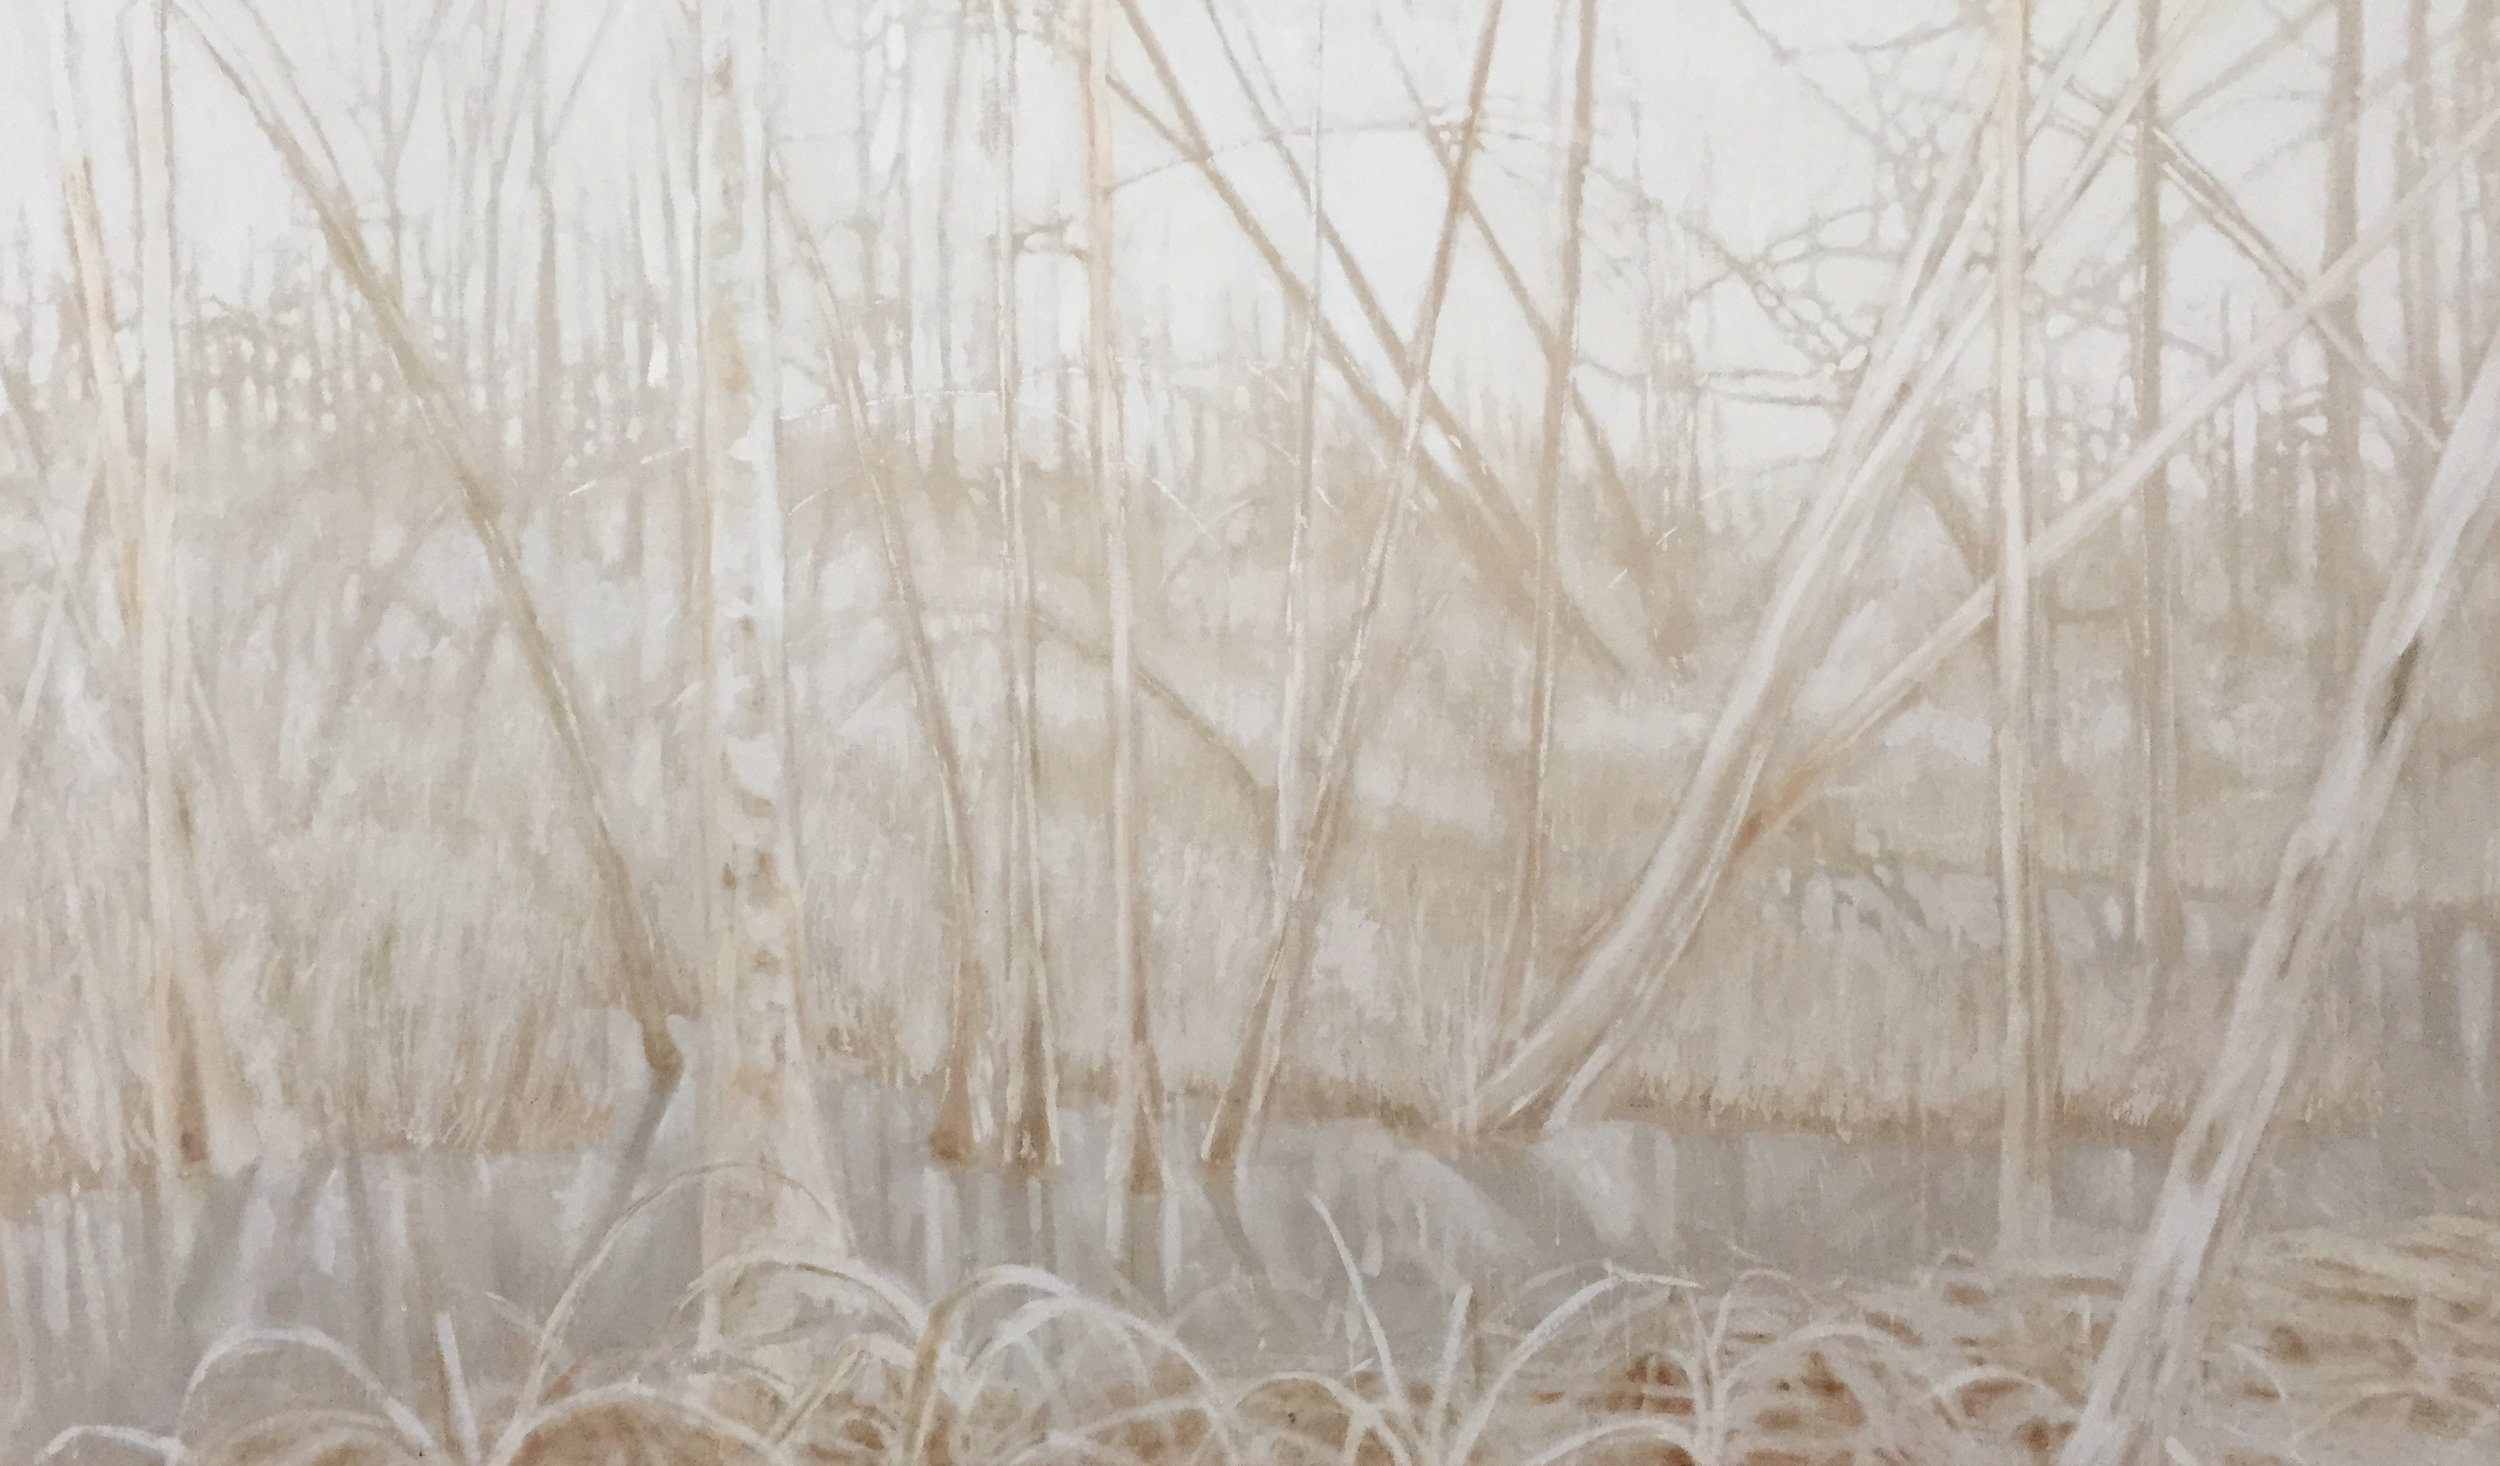 Swamp in White oil on raw canvas 4'x6'